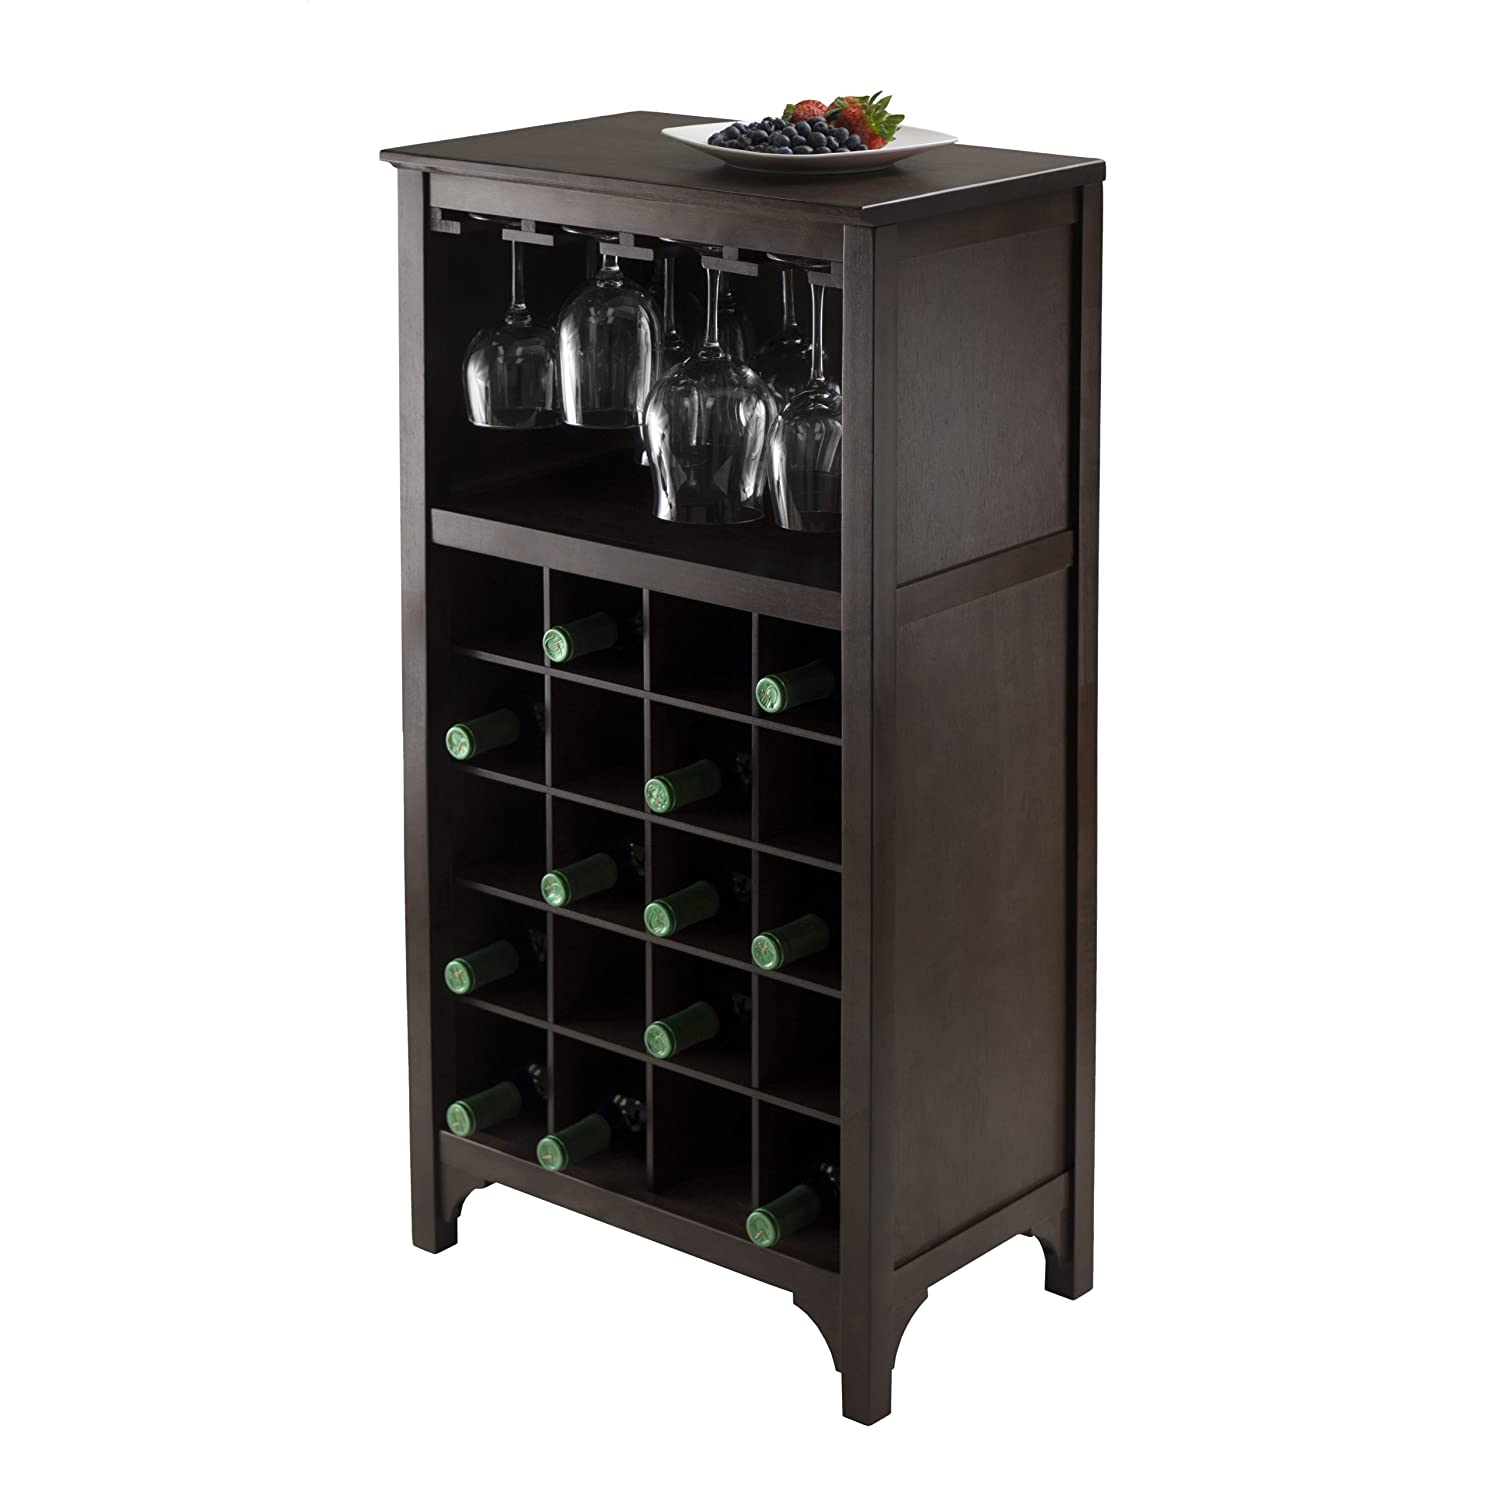 Kitchen Wine Cabinet Wine Storage Cabinet Dark Wood Bar 12 Glass 20 Bottles